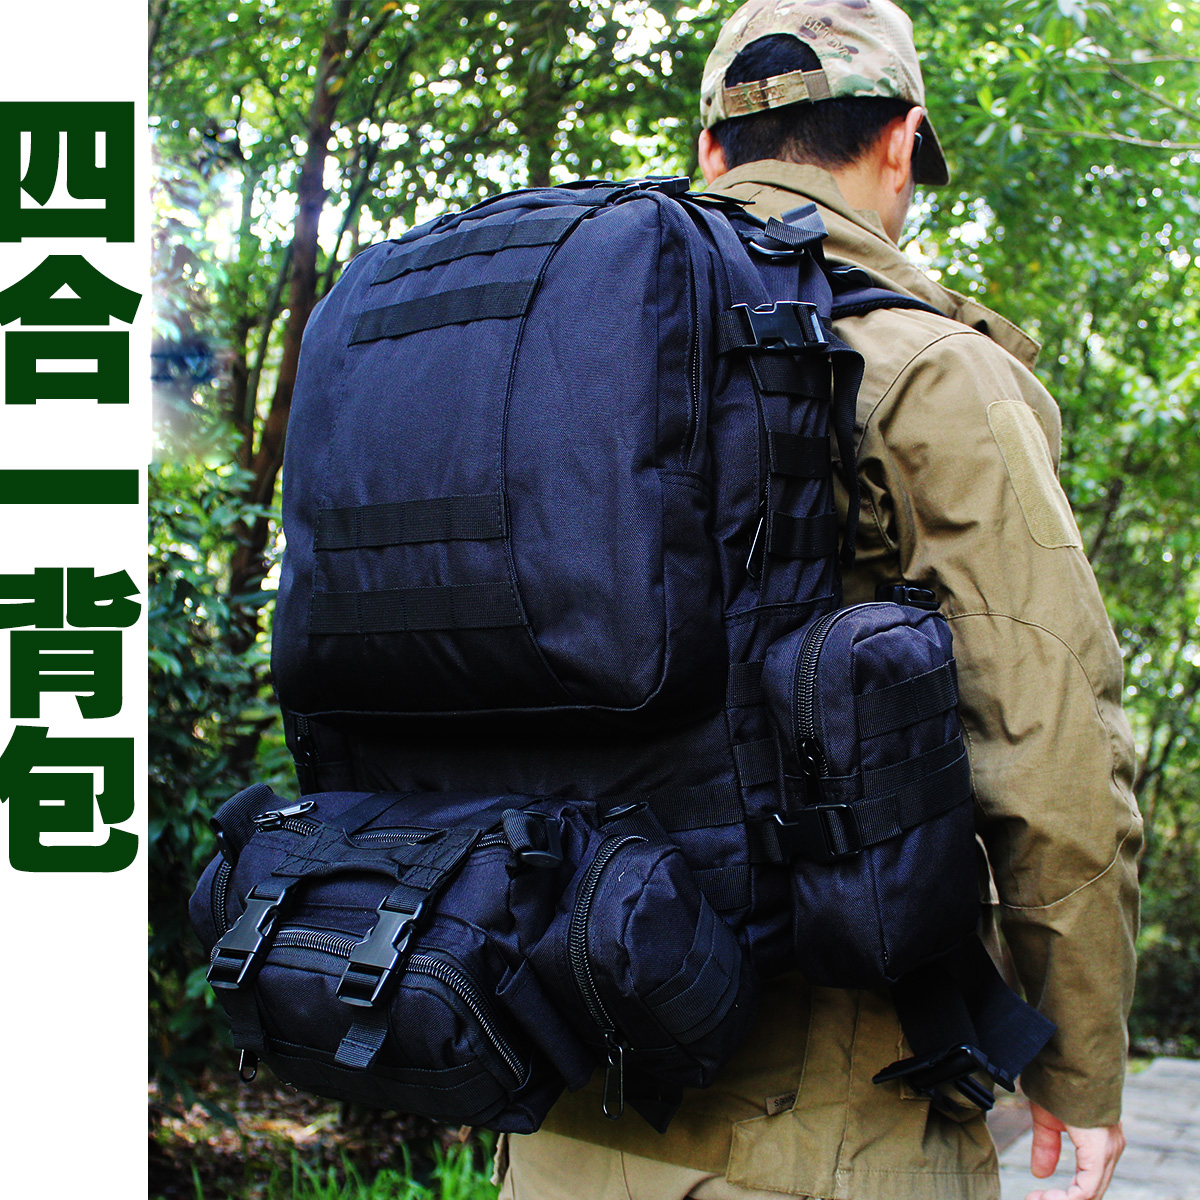 Combined Tactical Backpack Single Mountaineering Hiking Bag Mole Oversized Camouflage Special Battle Shoulder Pack